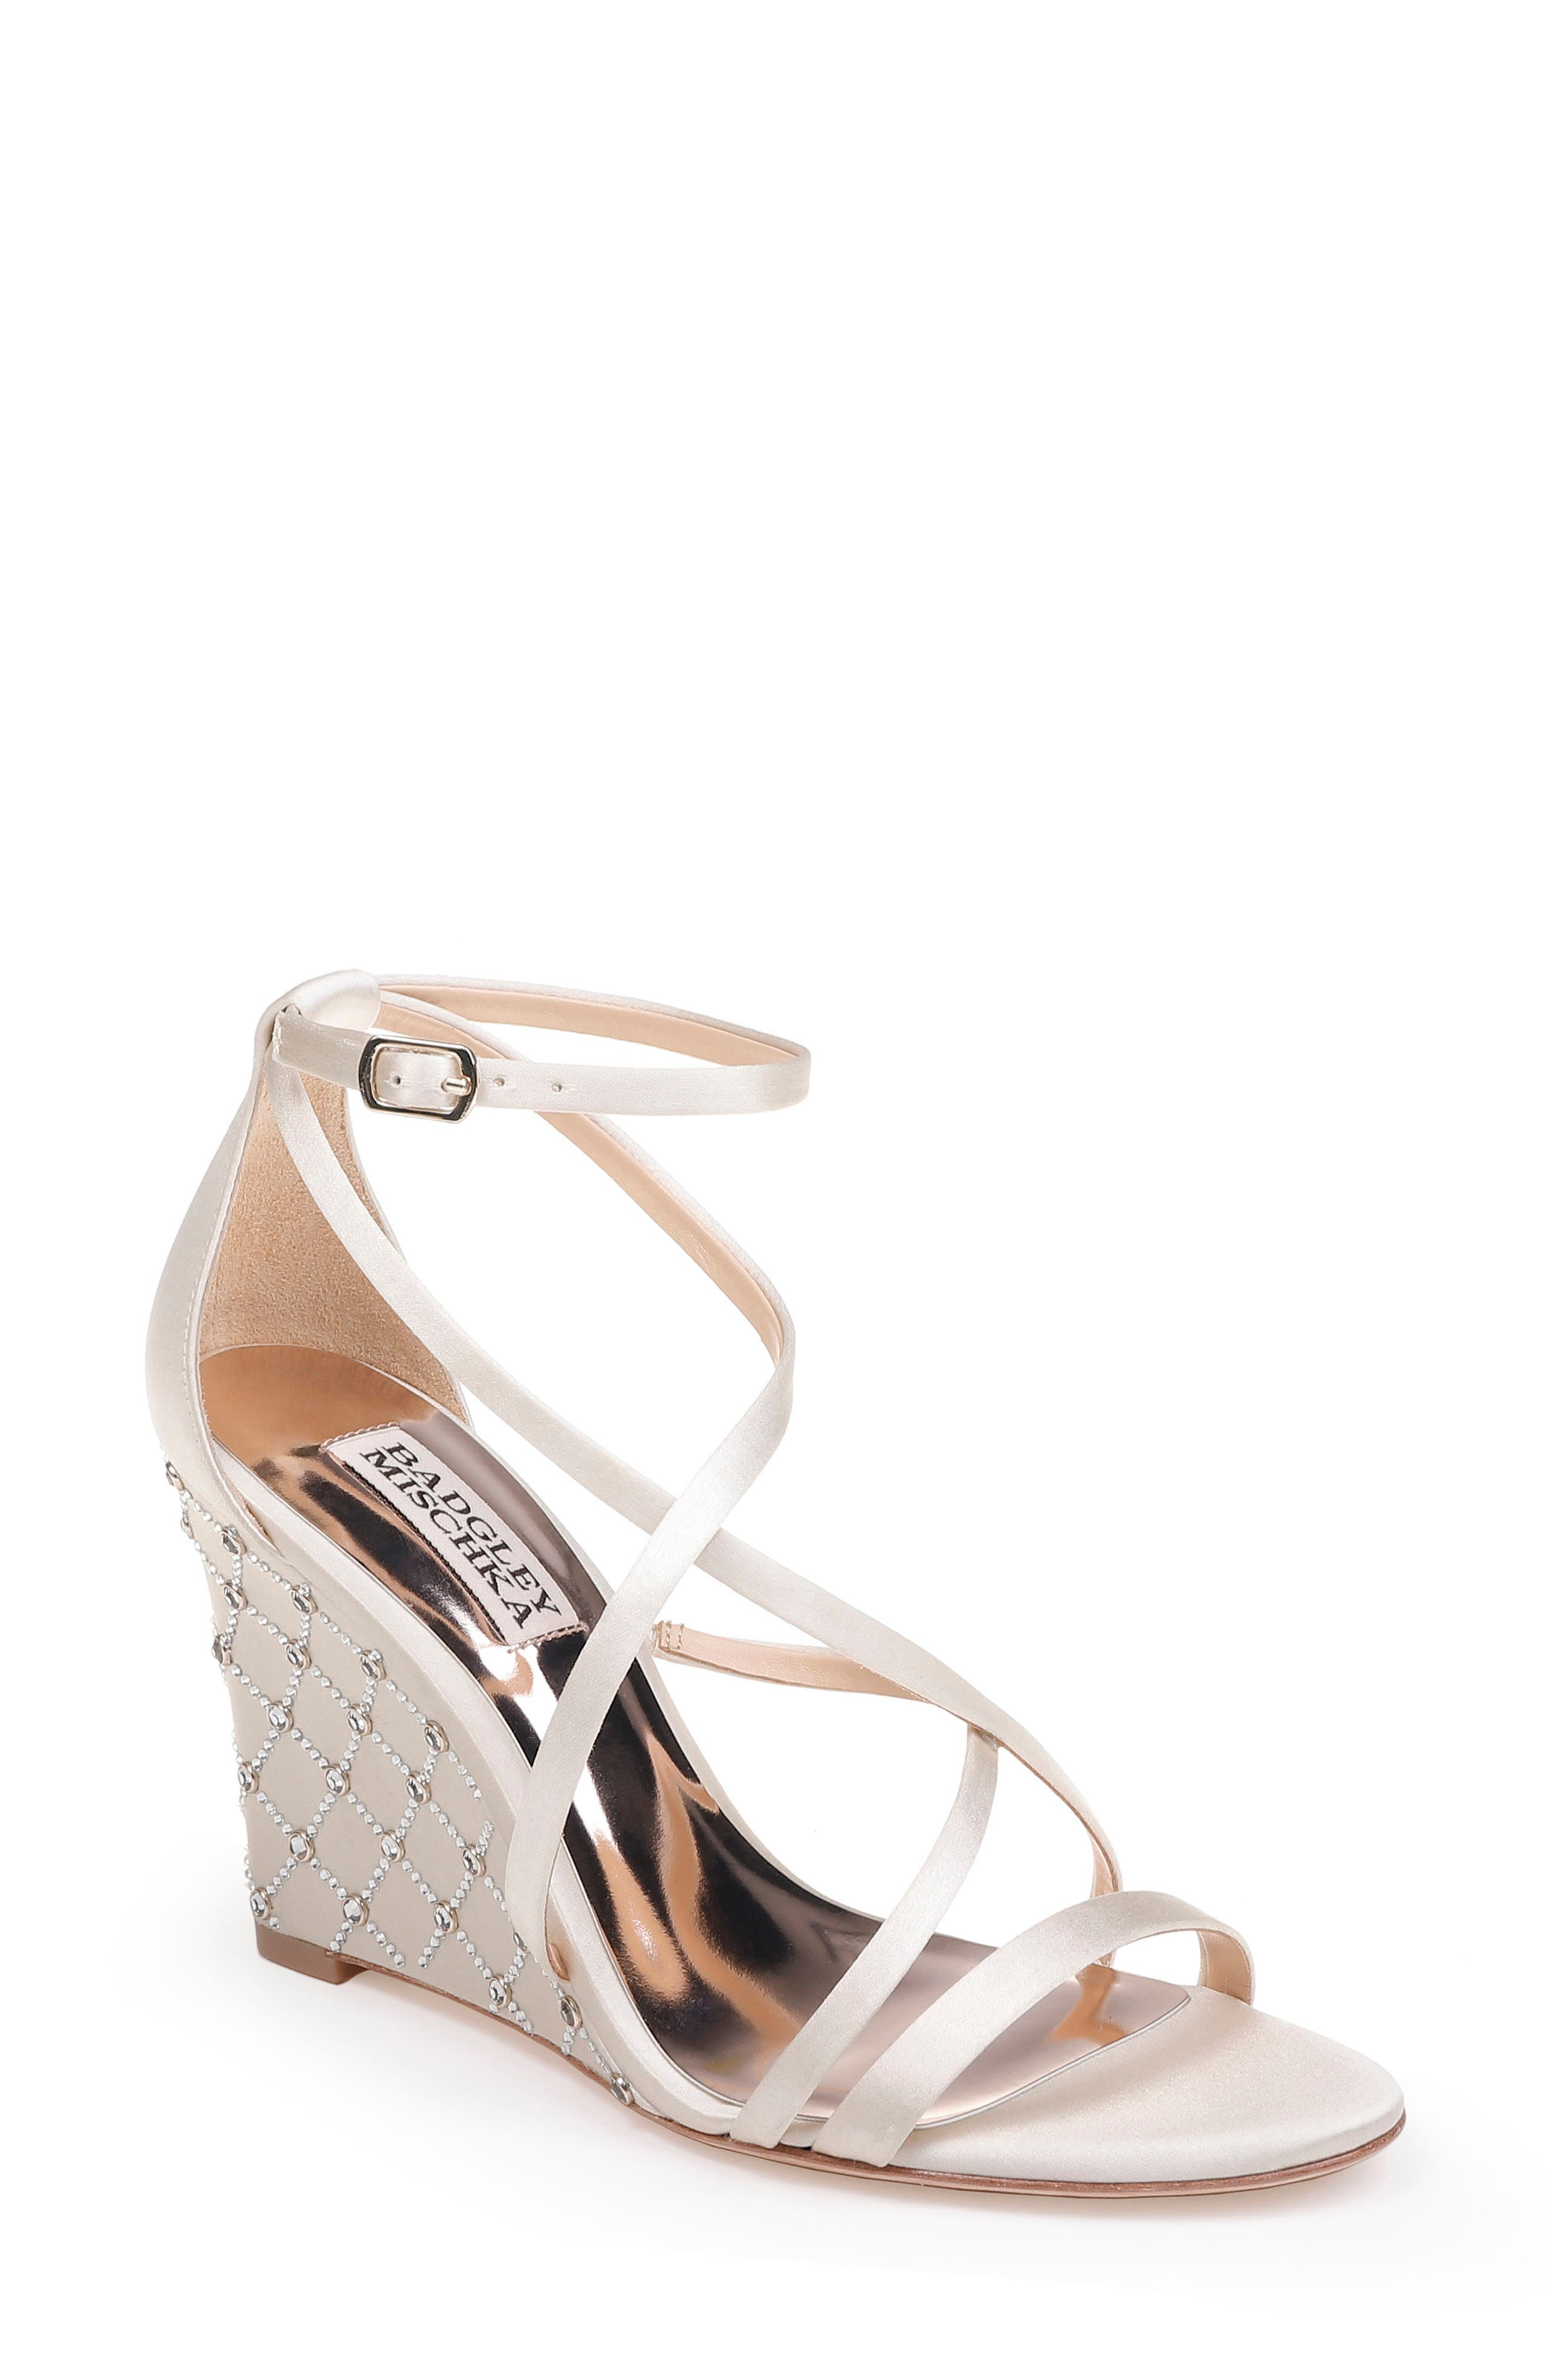 Shelly Strappy Wedge Sandal,                         Main,                         color, Ivory Satin